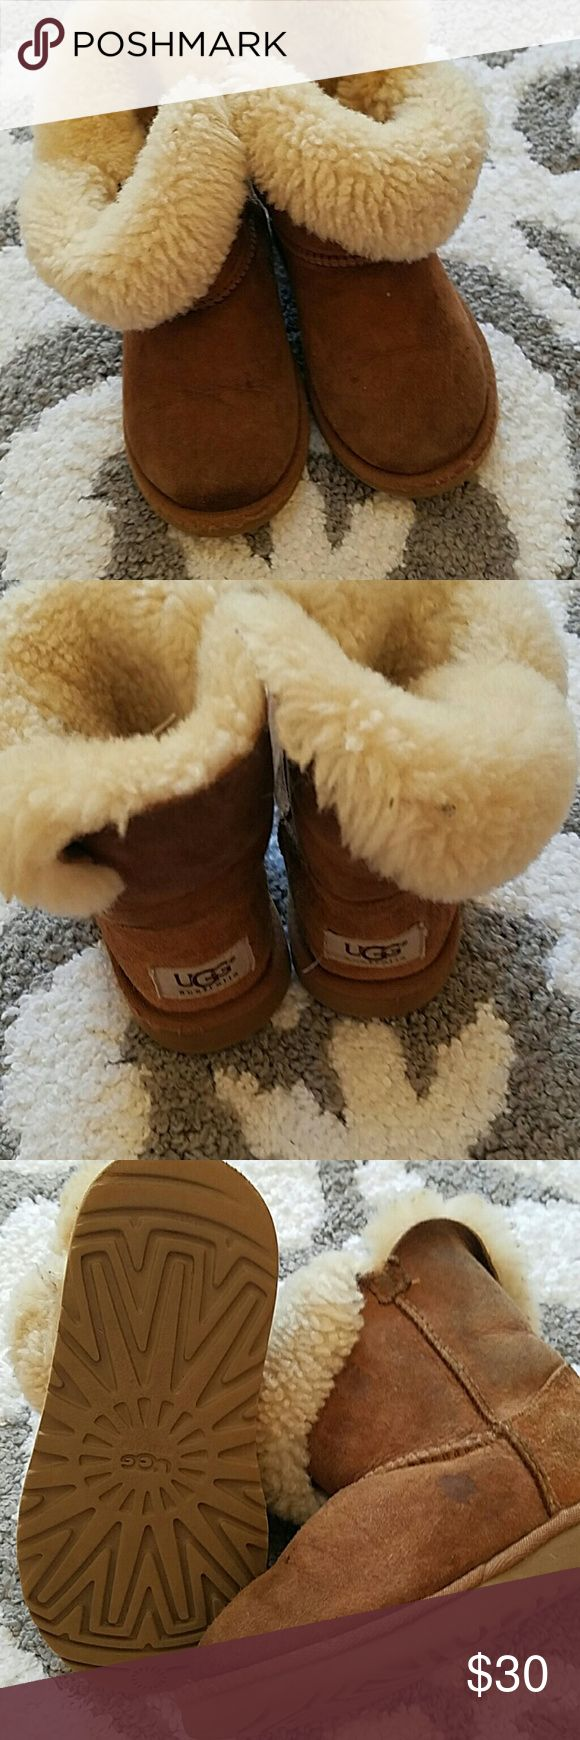 Kids Ugg boots Size 12 Ugg Boots worn but will clean up nicley UGG Shoes Boots